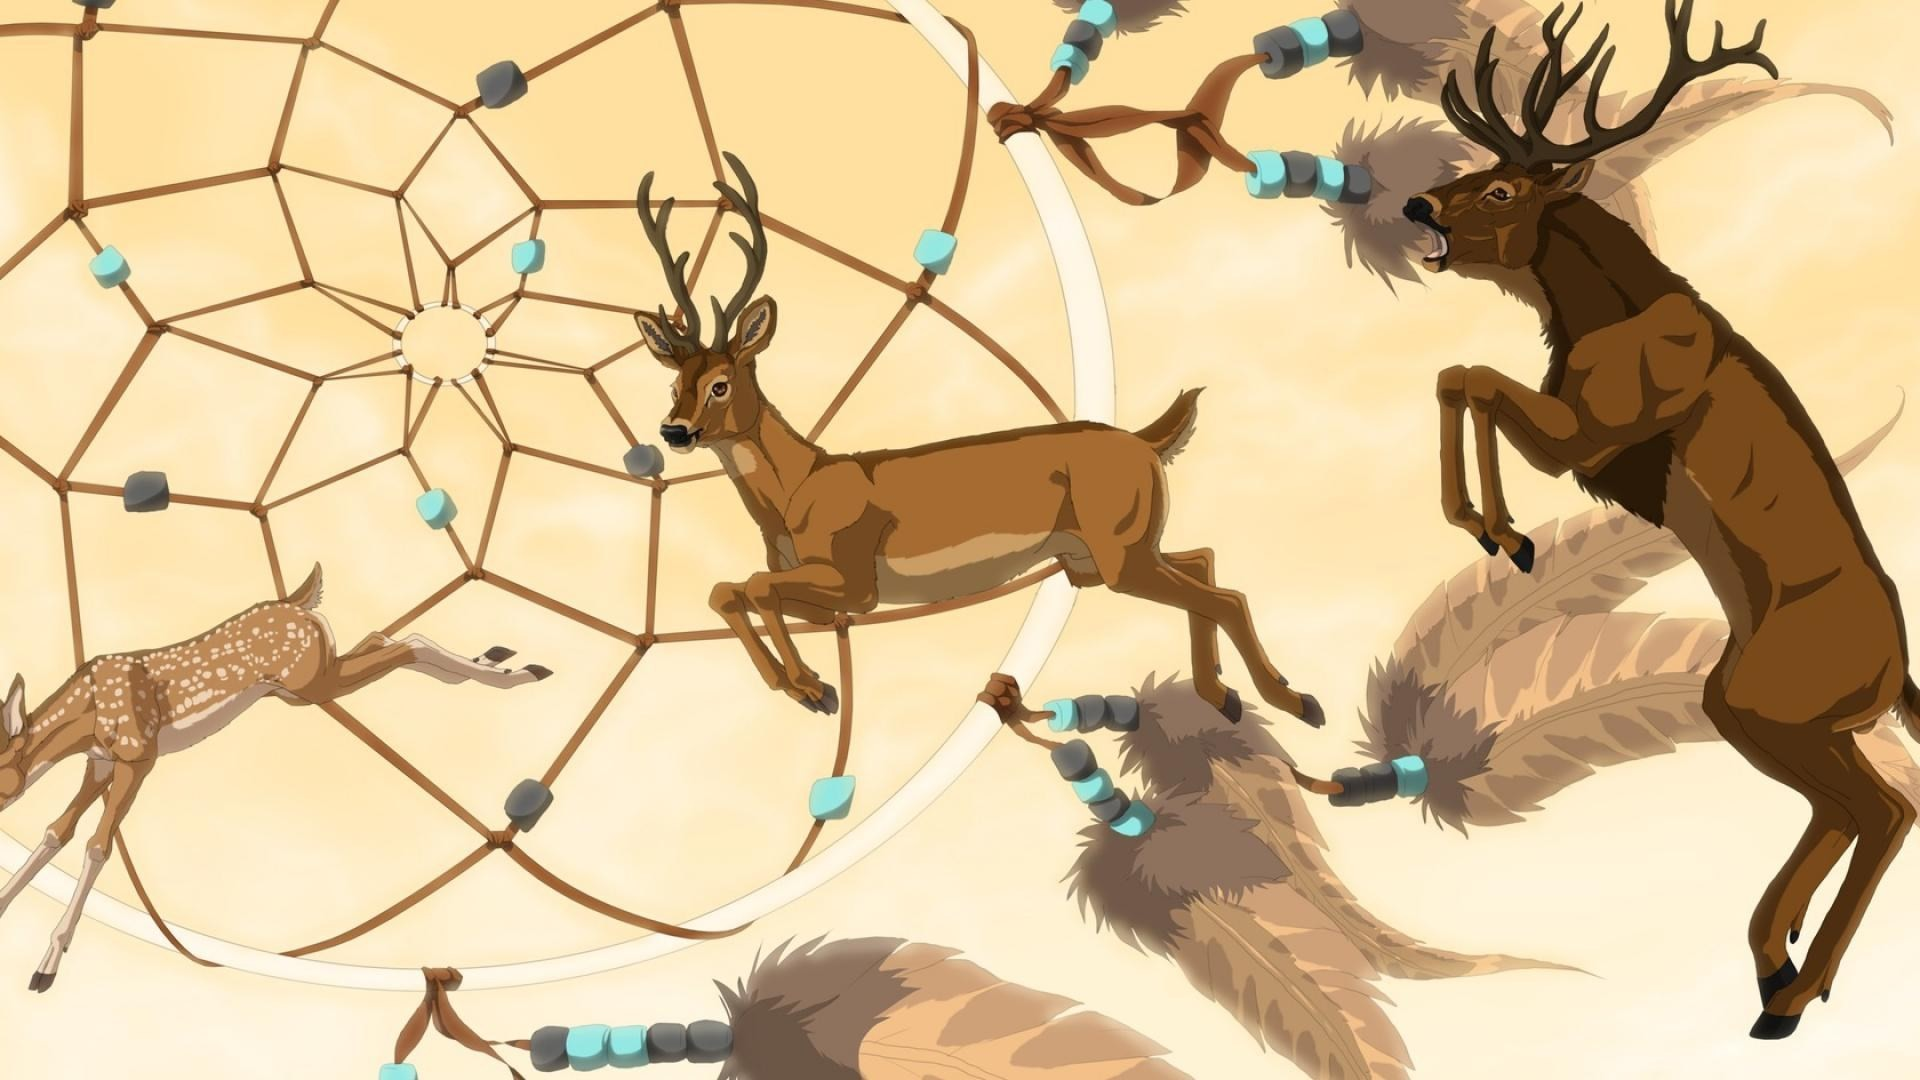 art dream catcher feathers deer animals horn hd wallpaper